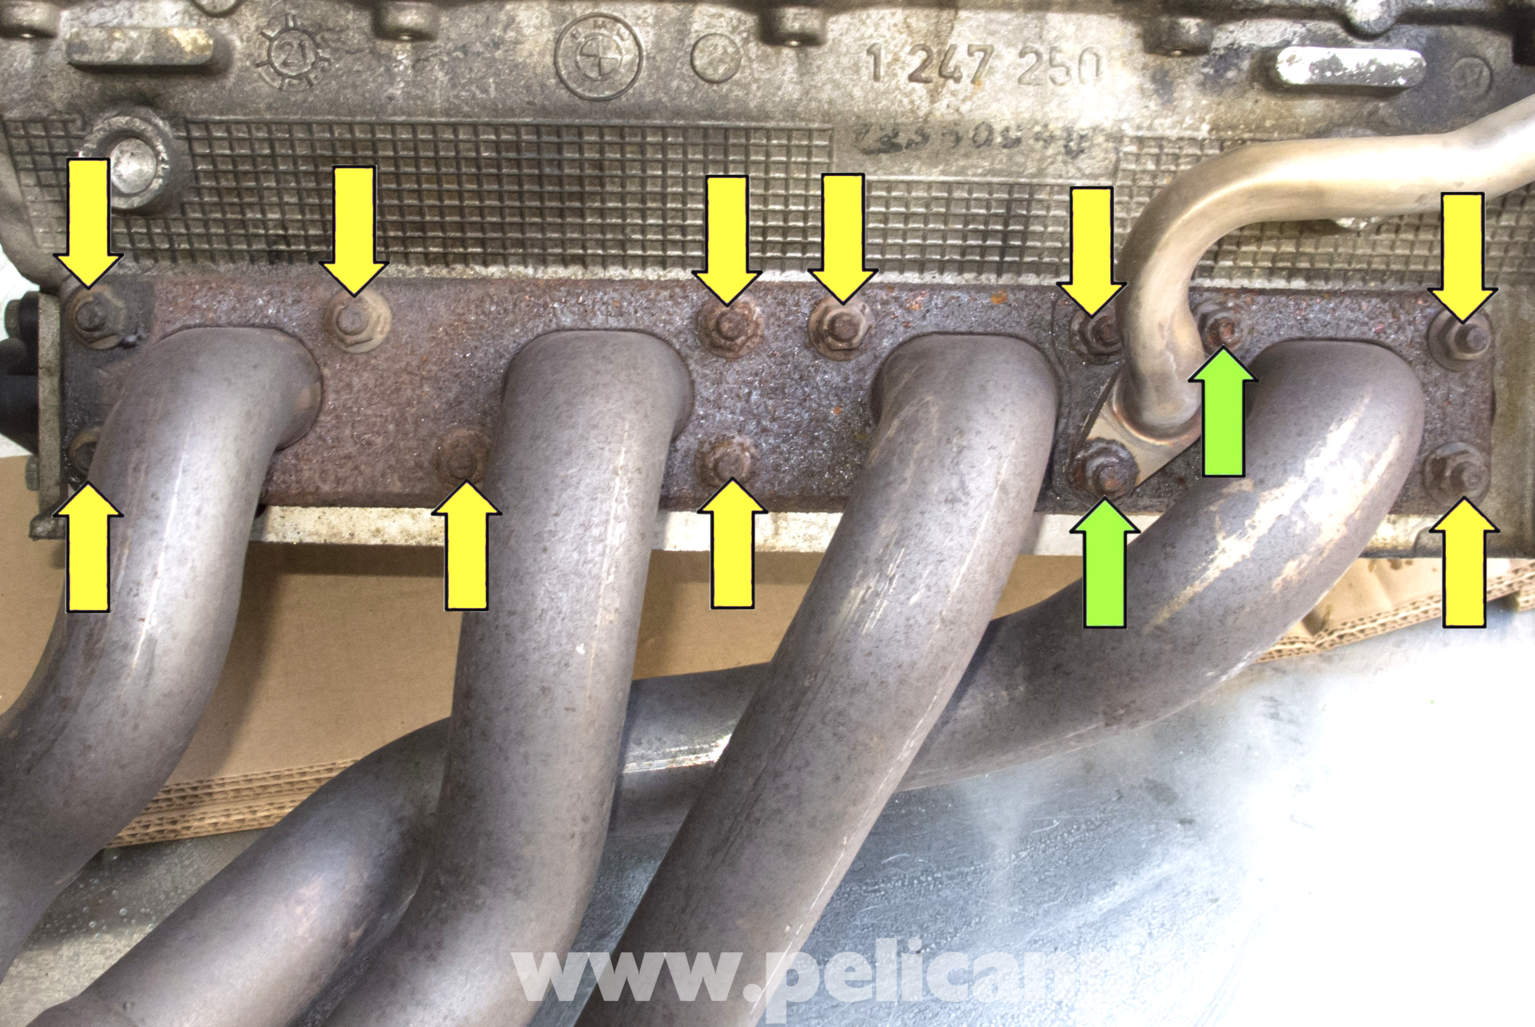 BMW Z3 Exhaust Manifold Removal And Replacement